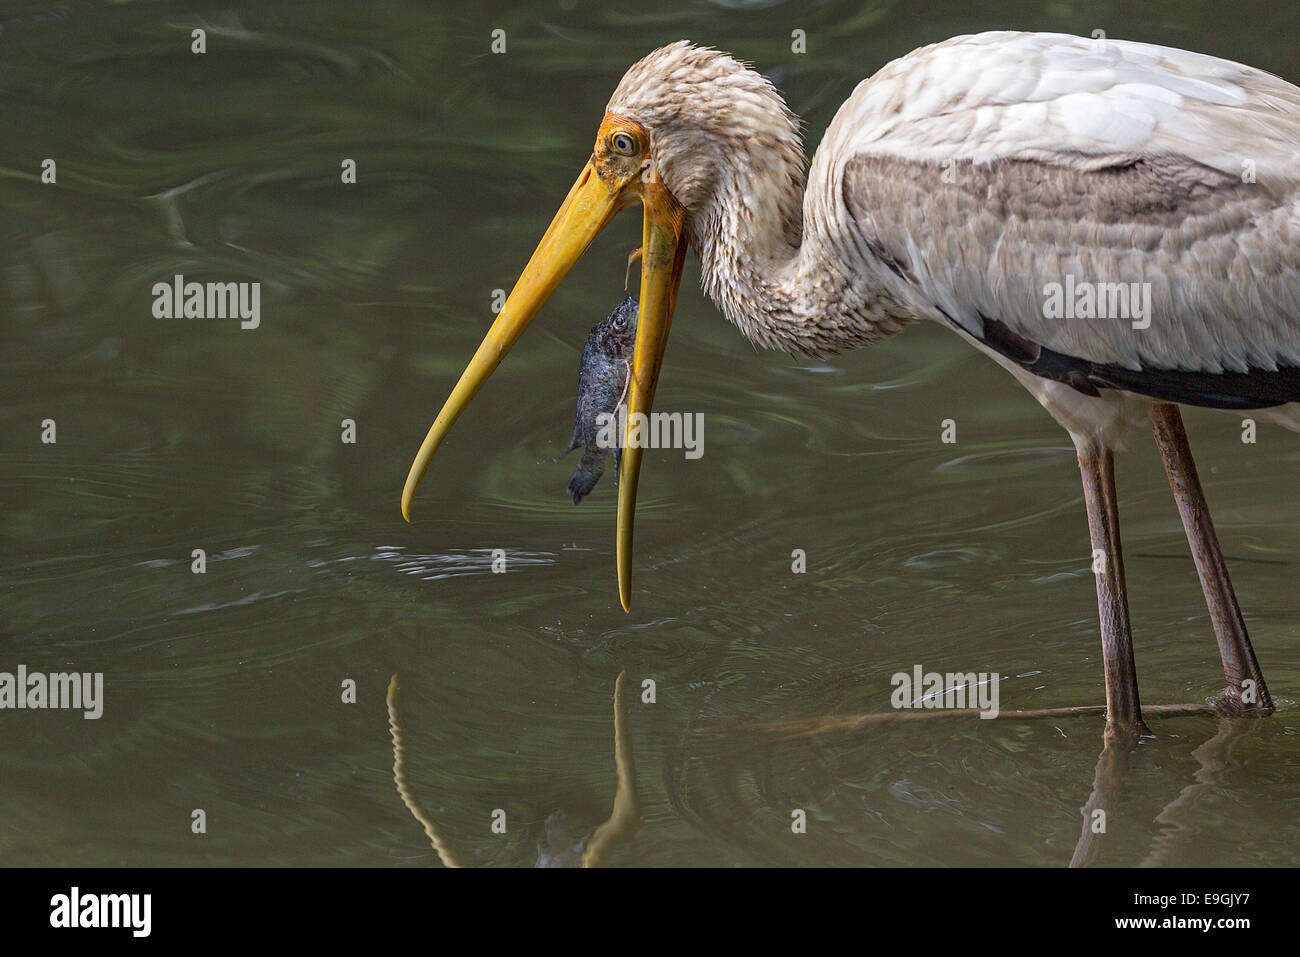 Milky stork (Mycteria cinerea) eating a fish - Stock Image